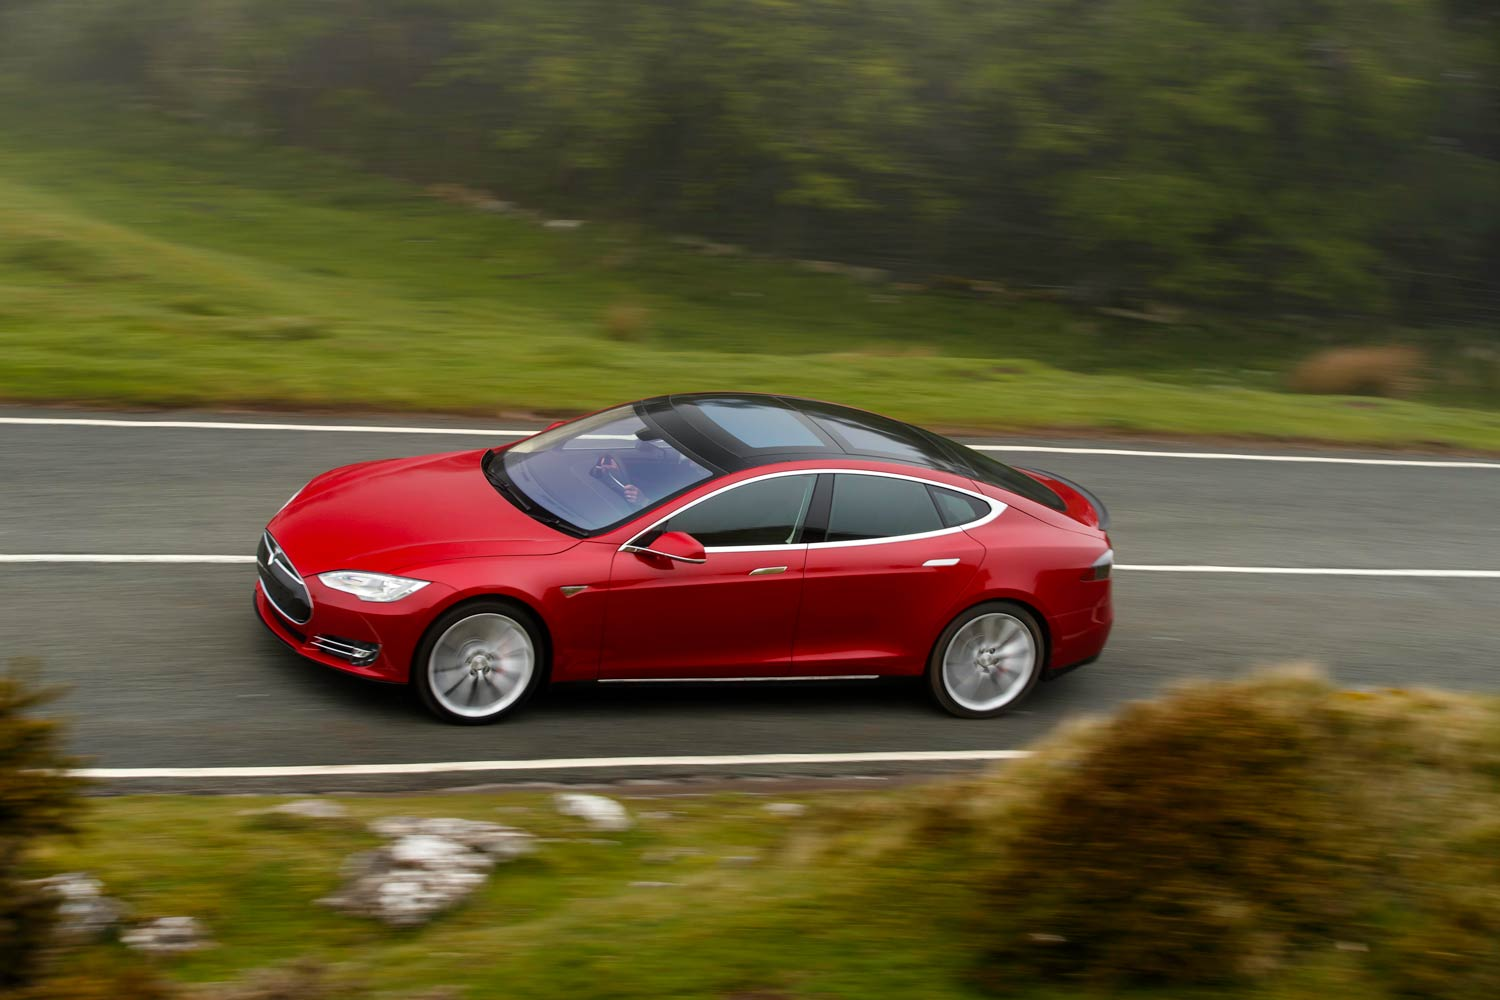 The Tesla Model S on the road